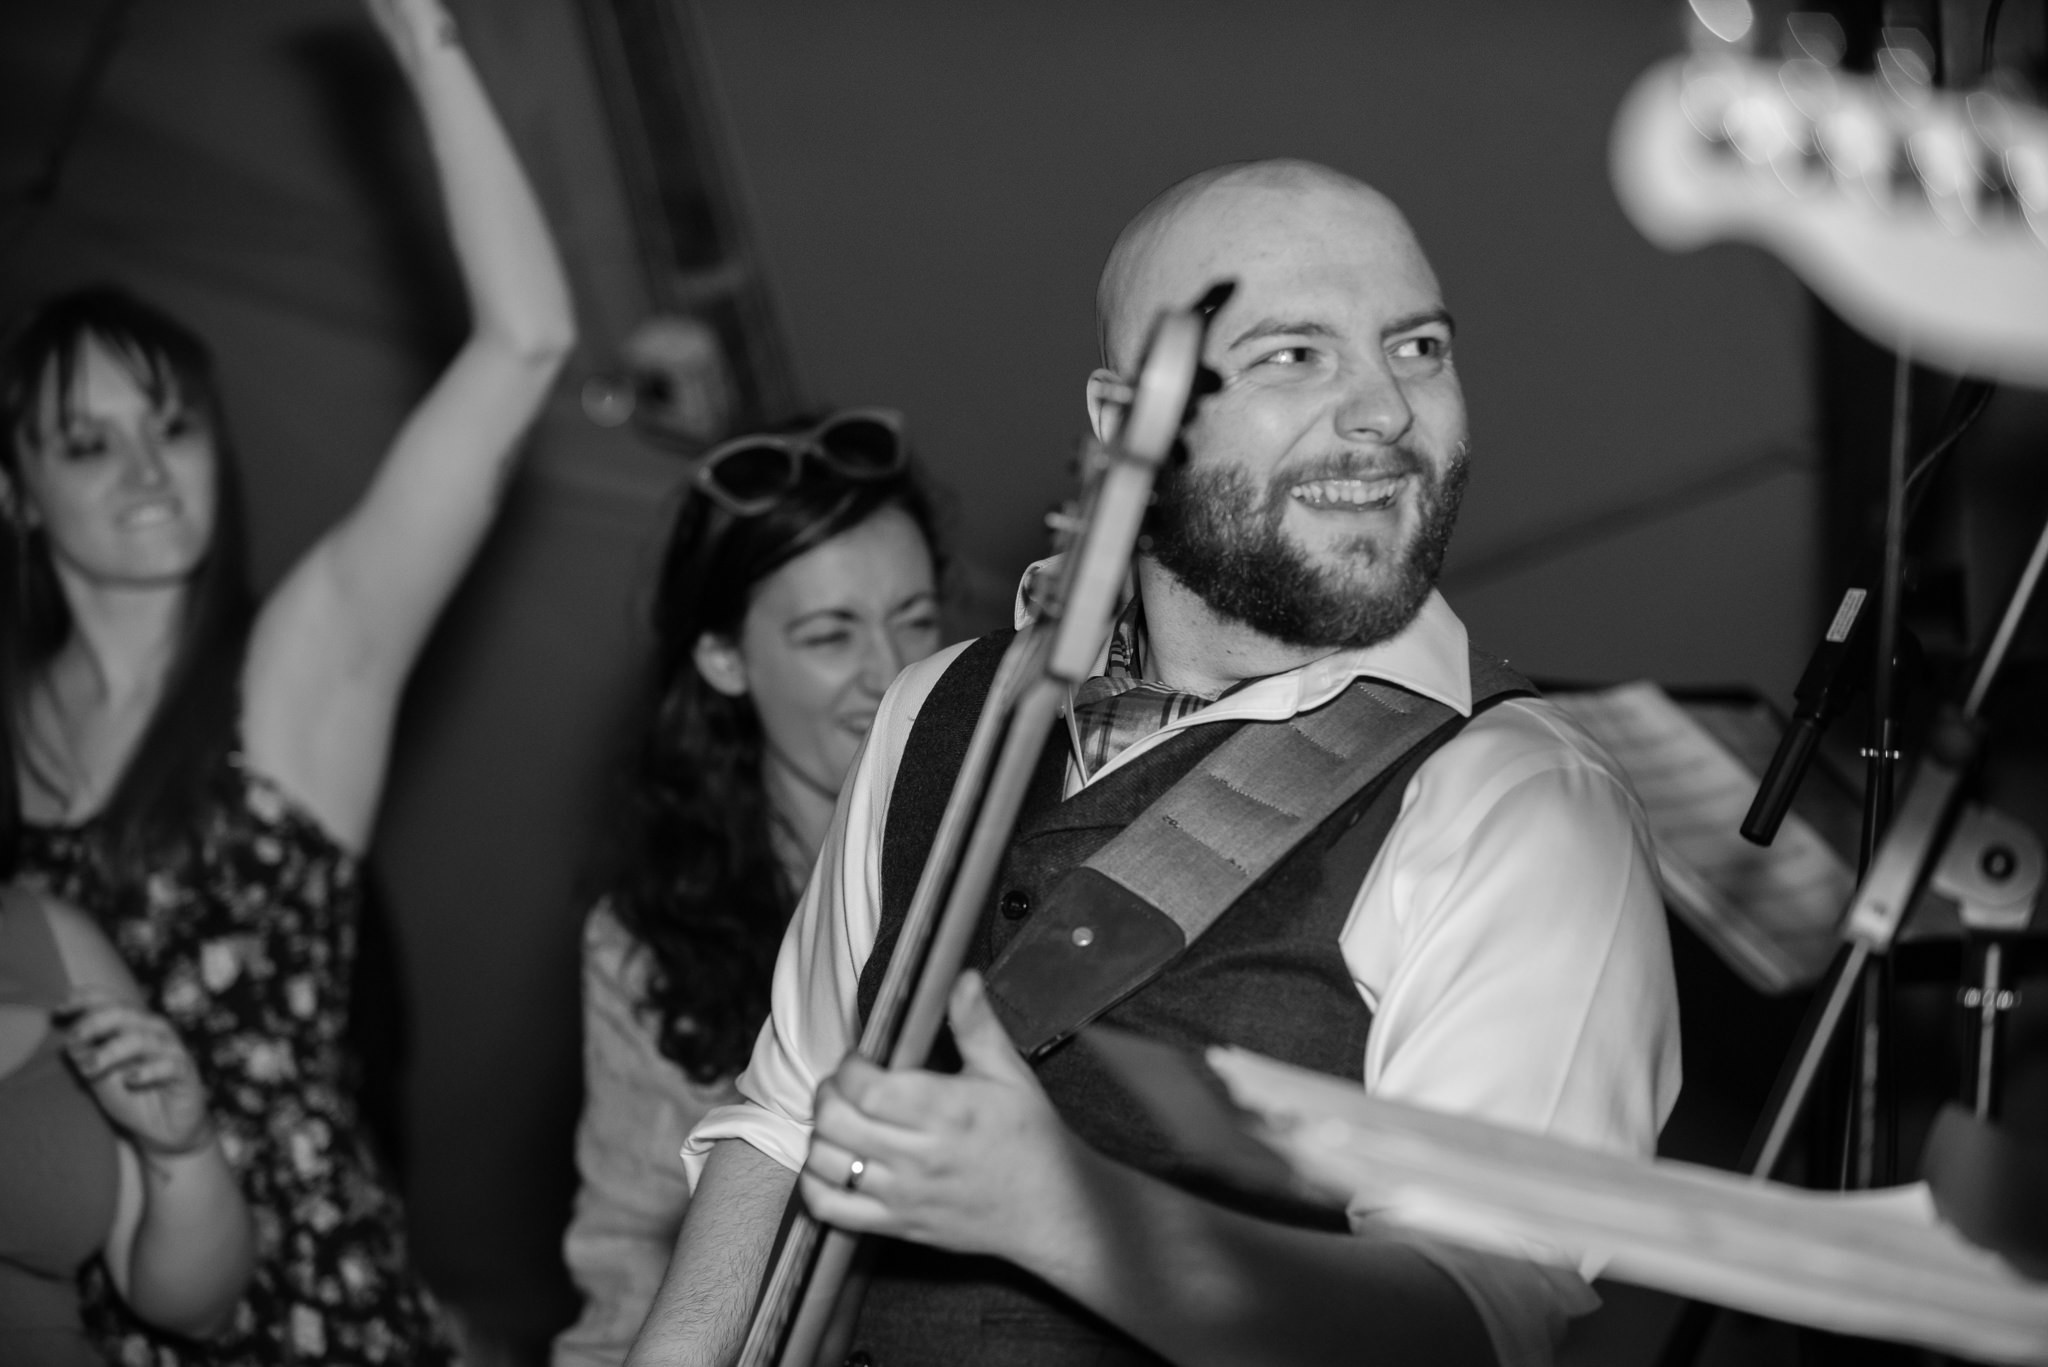 The groom performs during his tipi wedding reception